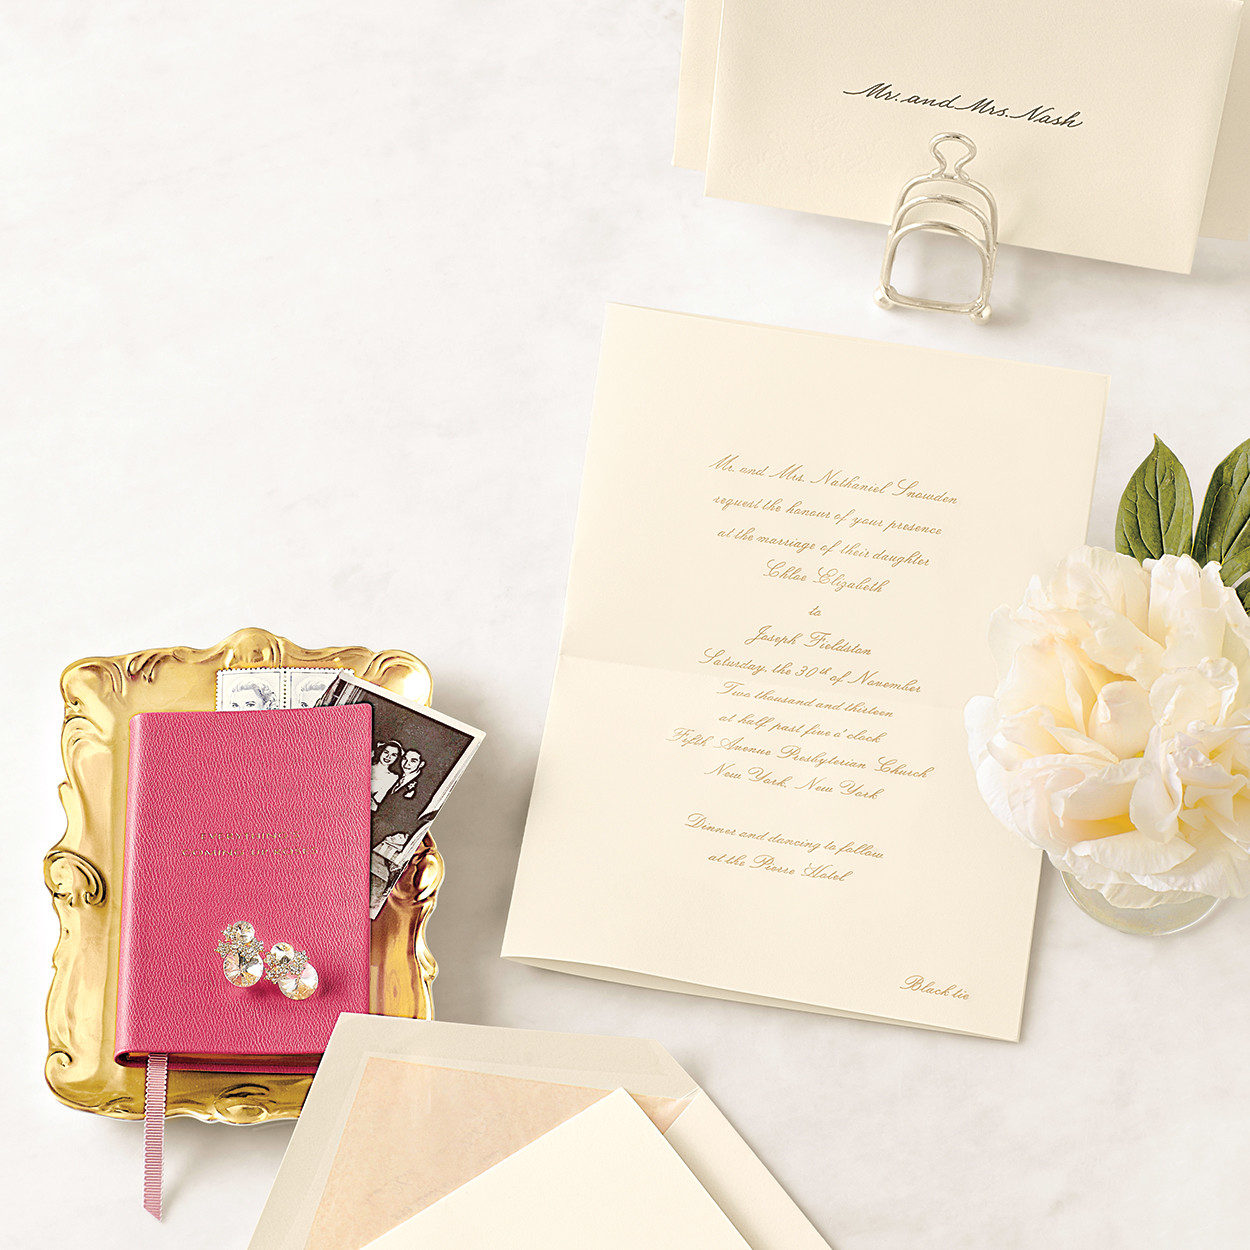 invitations from real weddings | martha stewart weddings, Wedding invitations